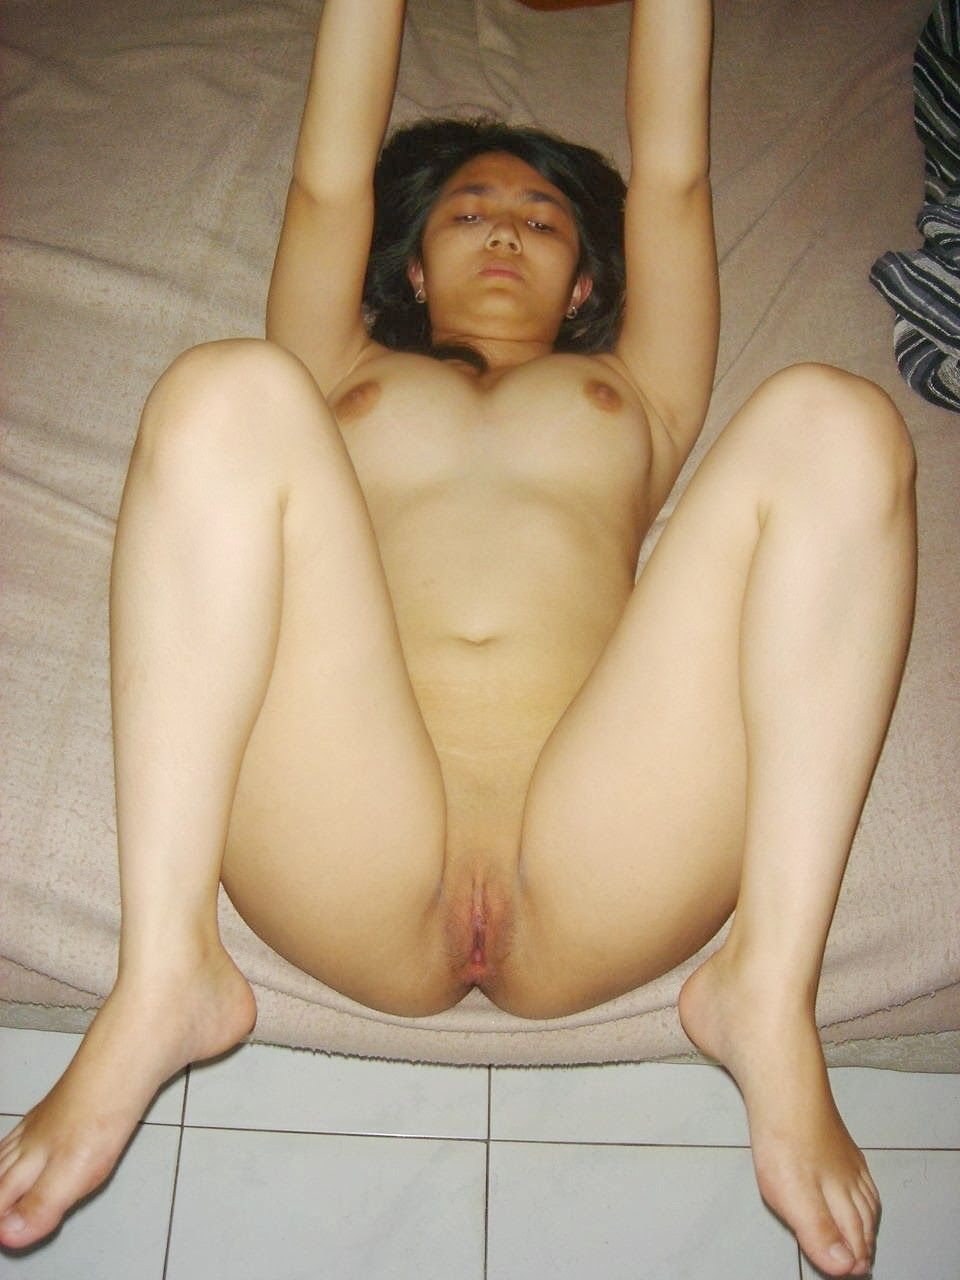 indonesian-galeris-pussy-photos-and-videos